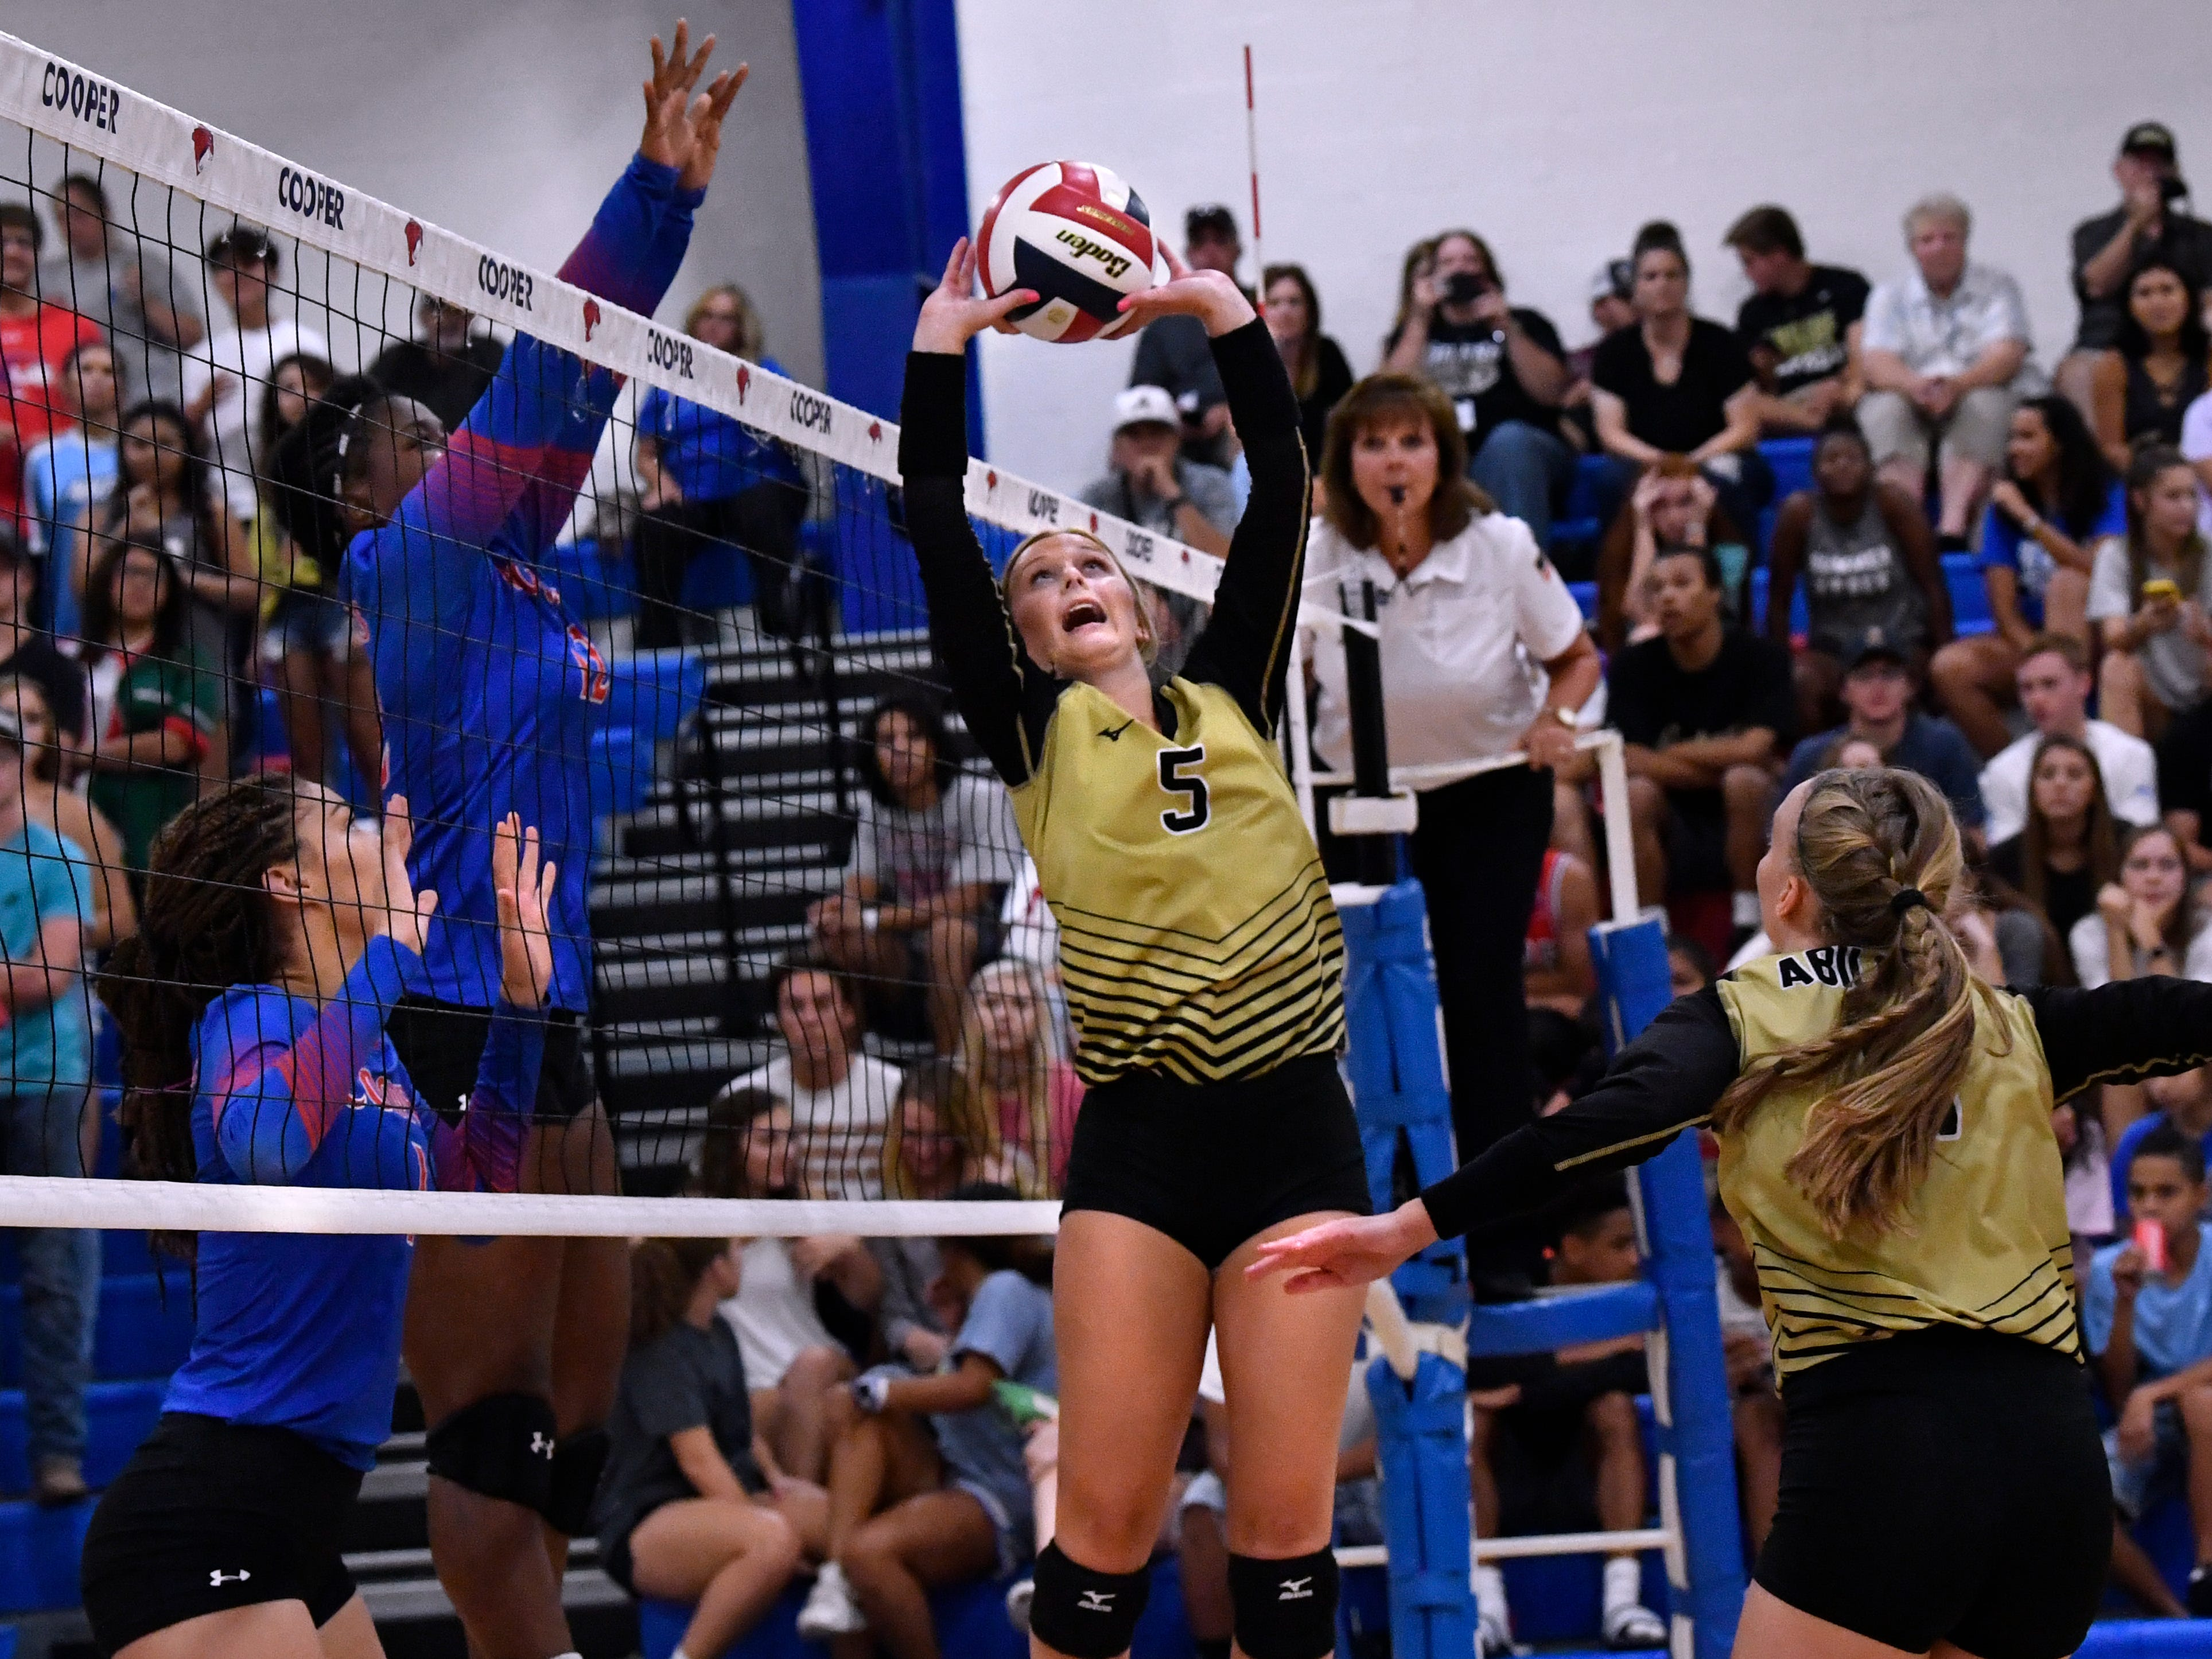 Abilene High's Allison Pierce sets the ball for teammate Sarah Cox. Abilene High won the crosstown volleyball game Tuesday August 7, 2018 against Cooper High in the best-of-five match, 25-21, 16-25, 25-20, 17-25, 15-7.